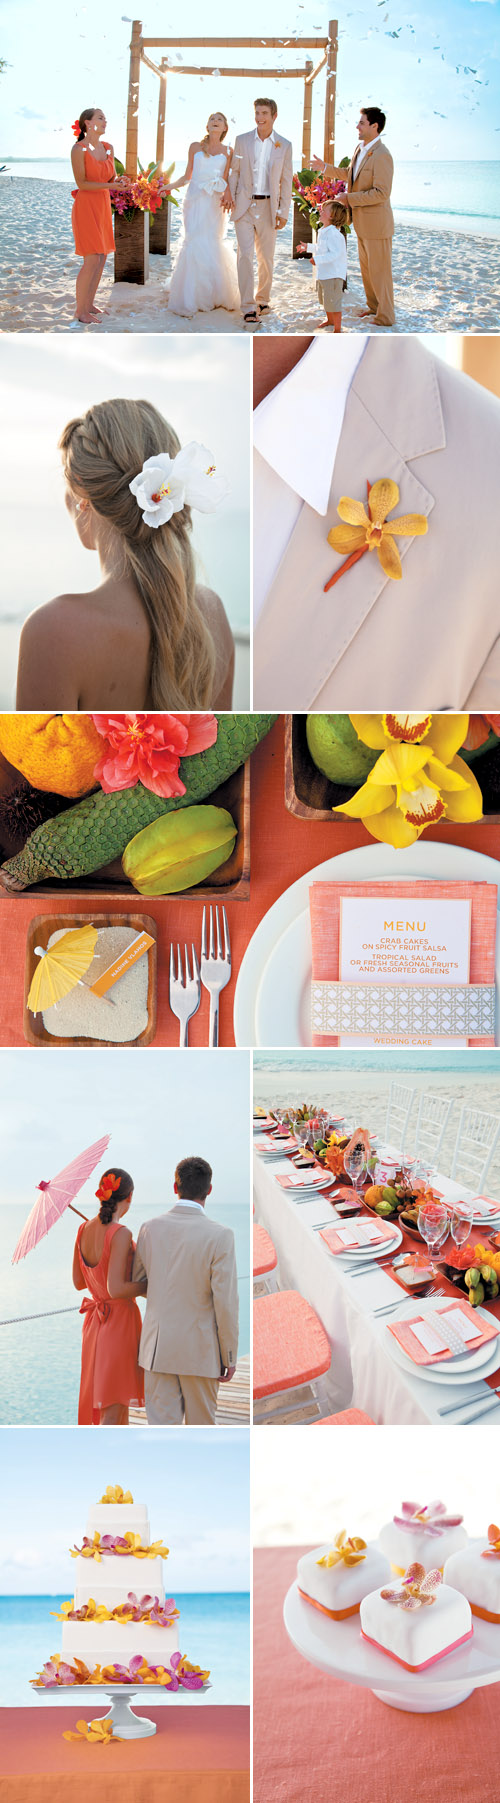 Island Paradise destination wedding theme - Beaches Resort Turks and Caicos with destination wedding packages from Martha Stewart Weddings